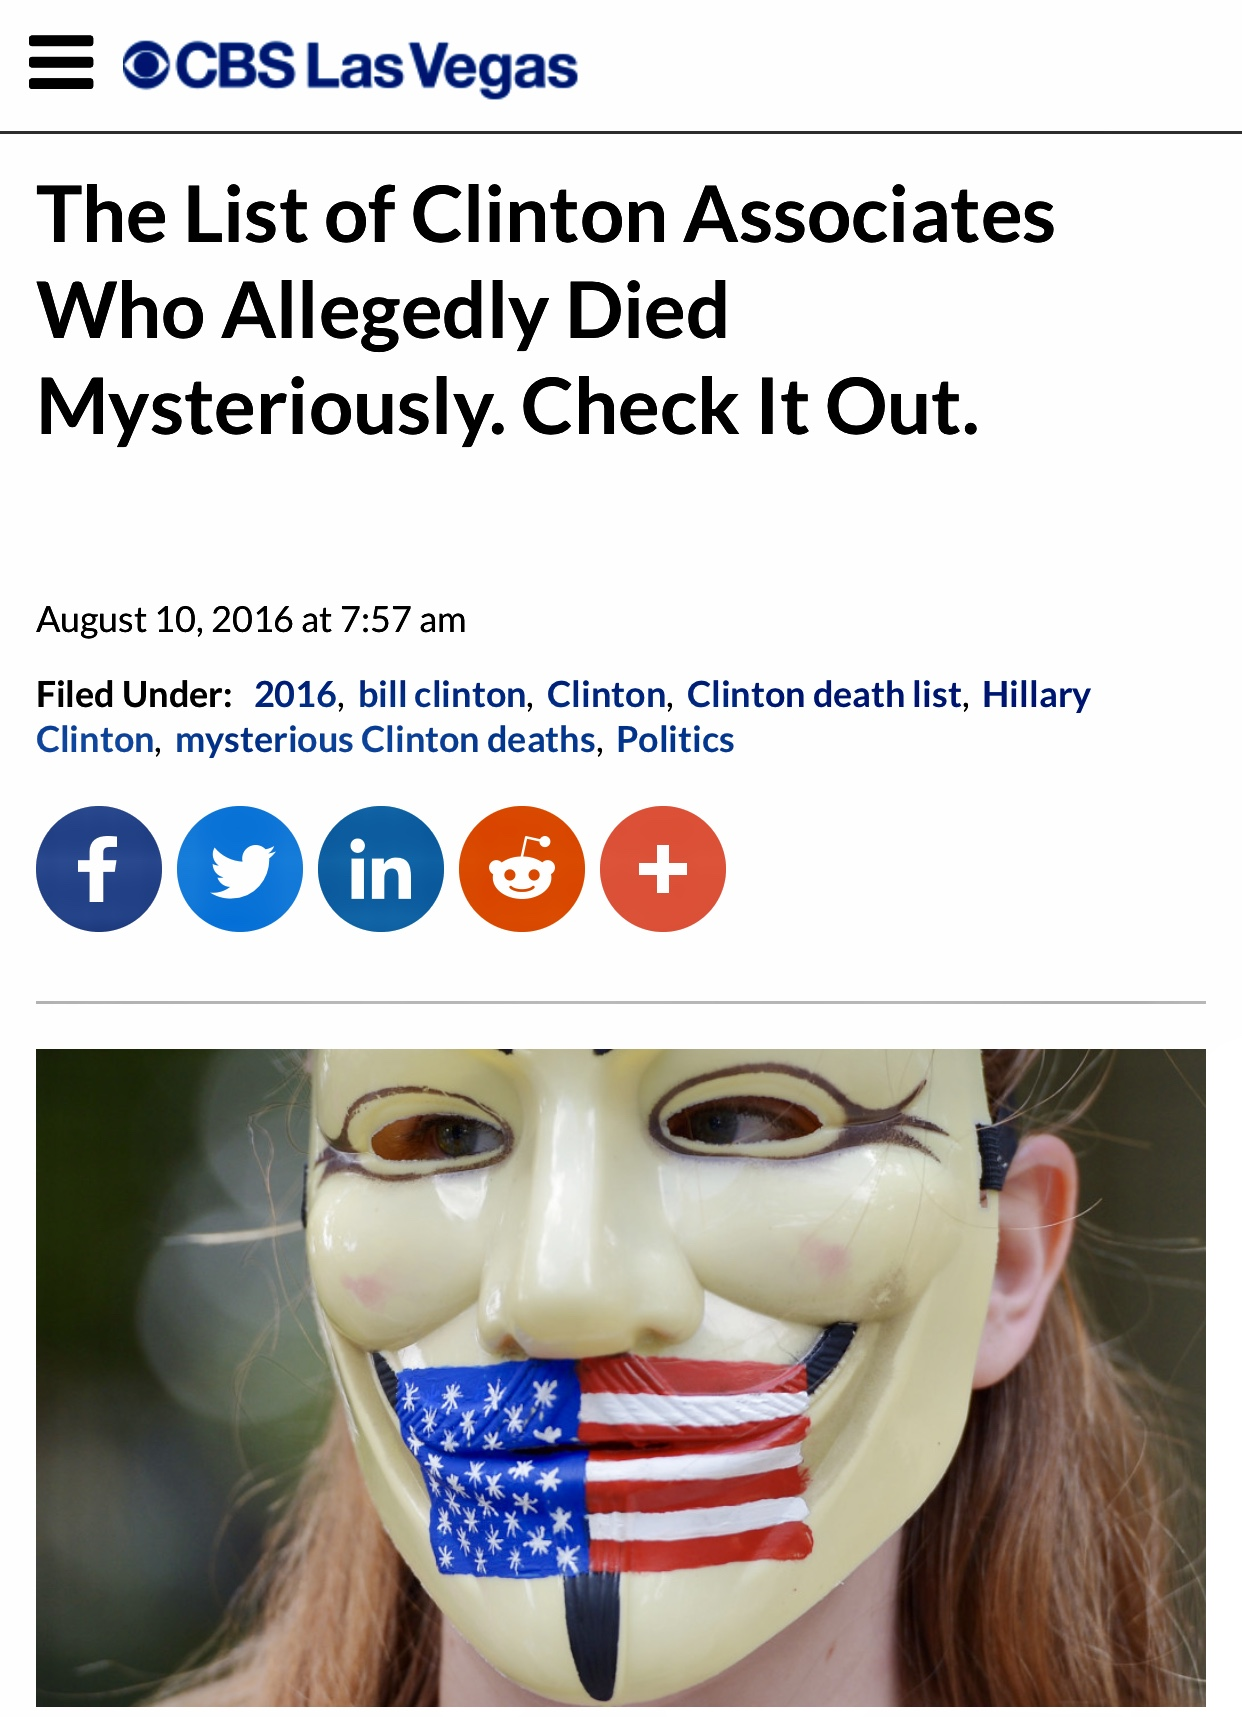 CBS Updated List of Clinton Associates Who Allegedly Died Mysteriously 496 Reads